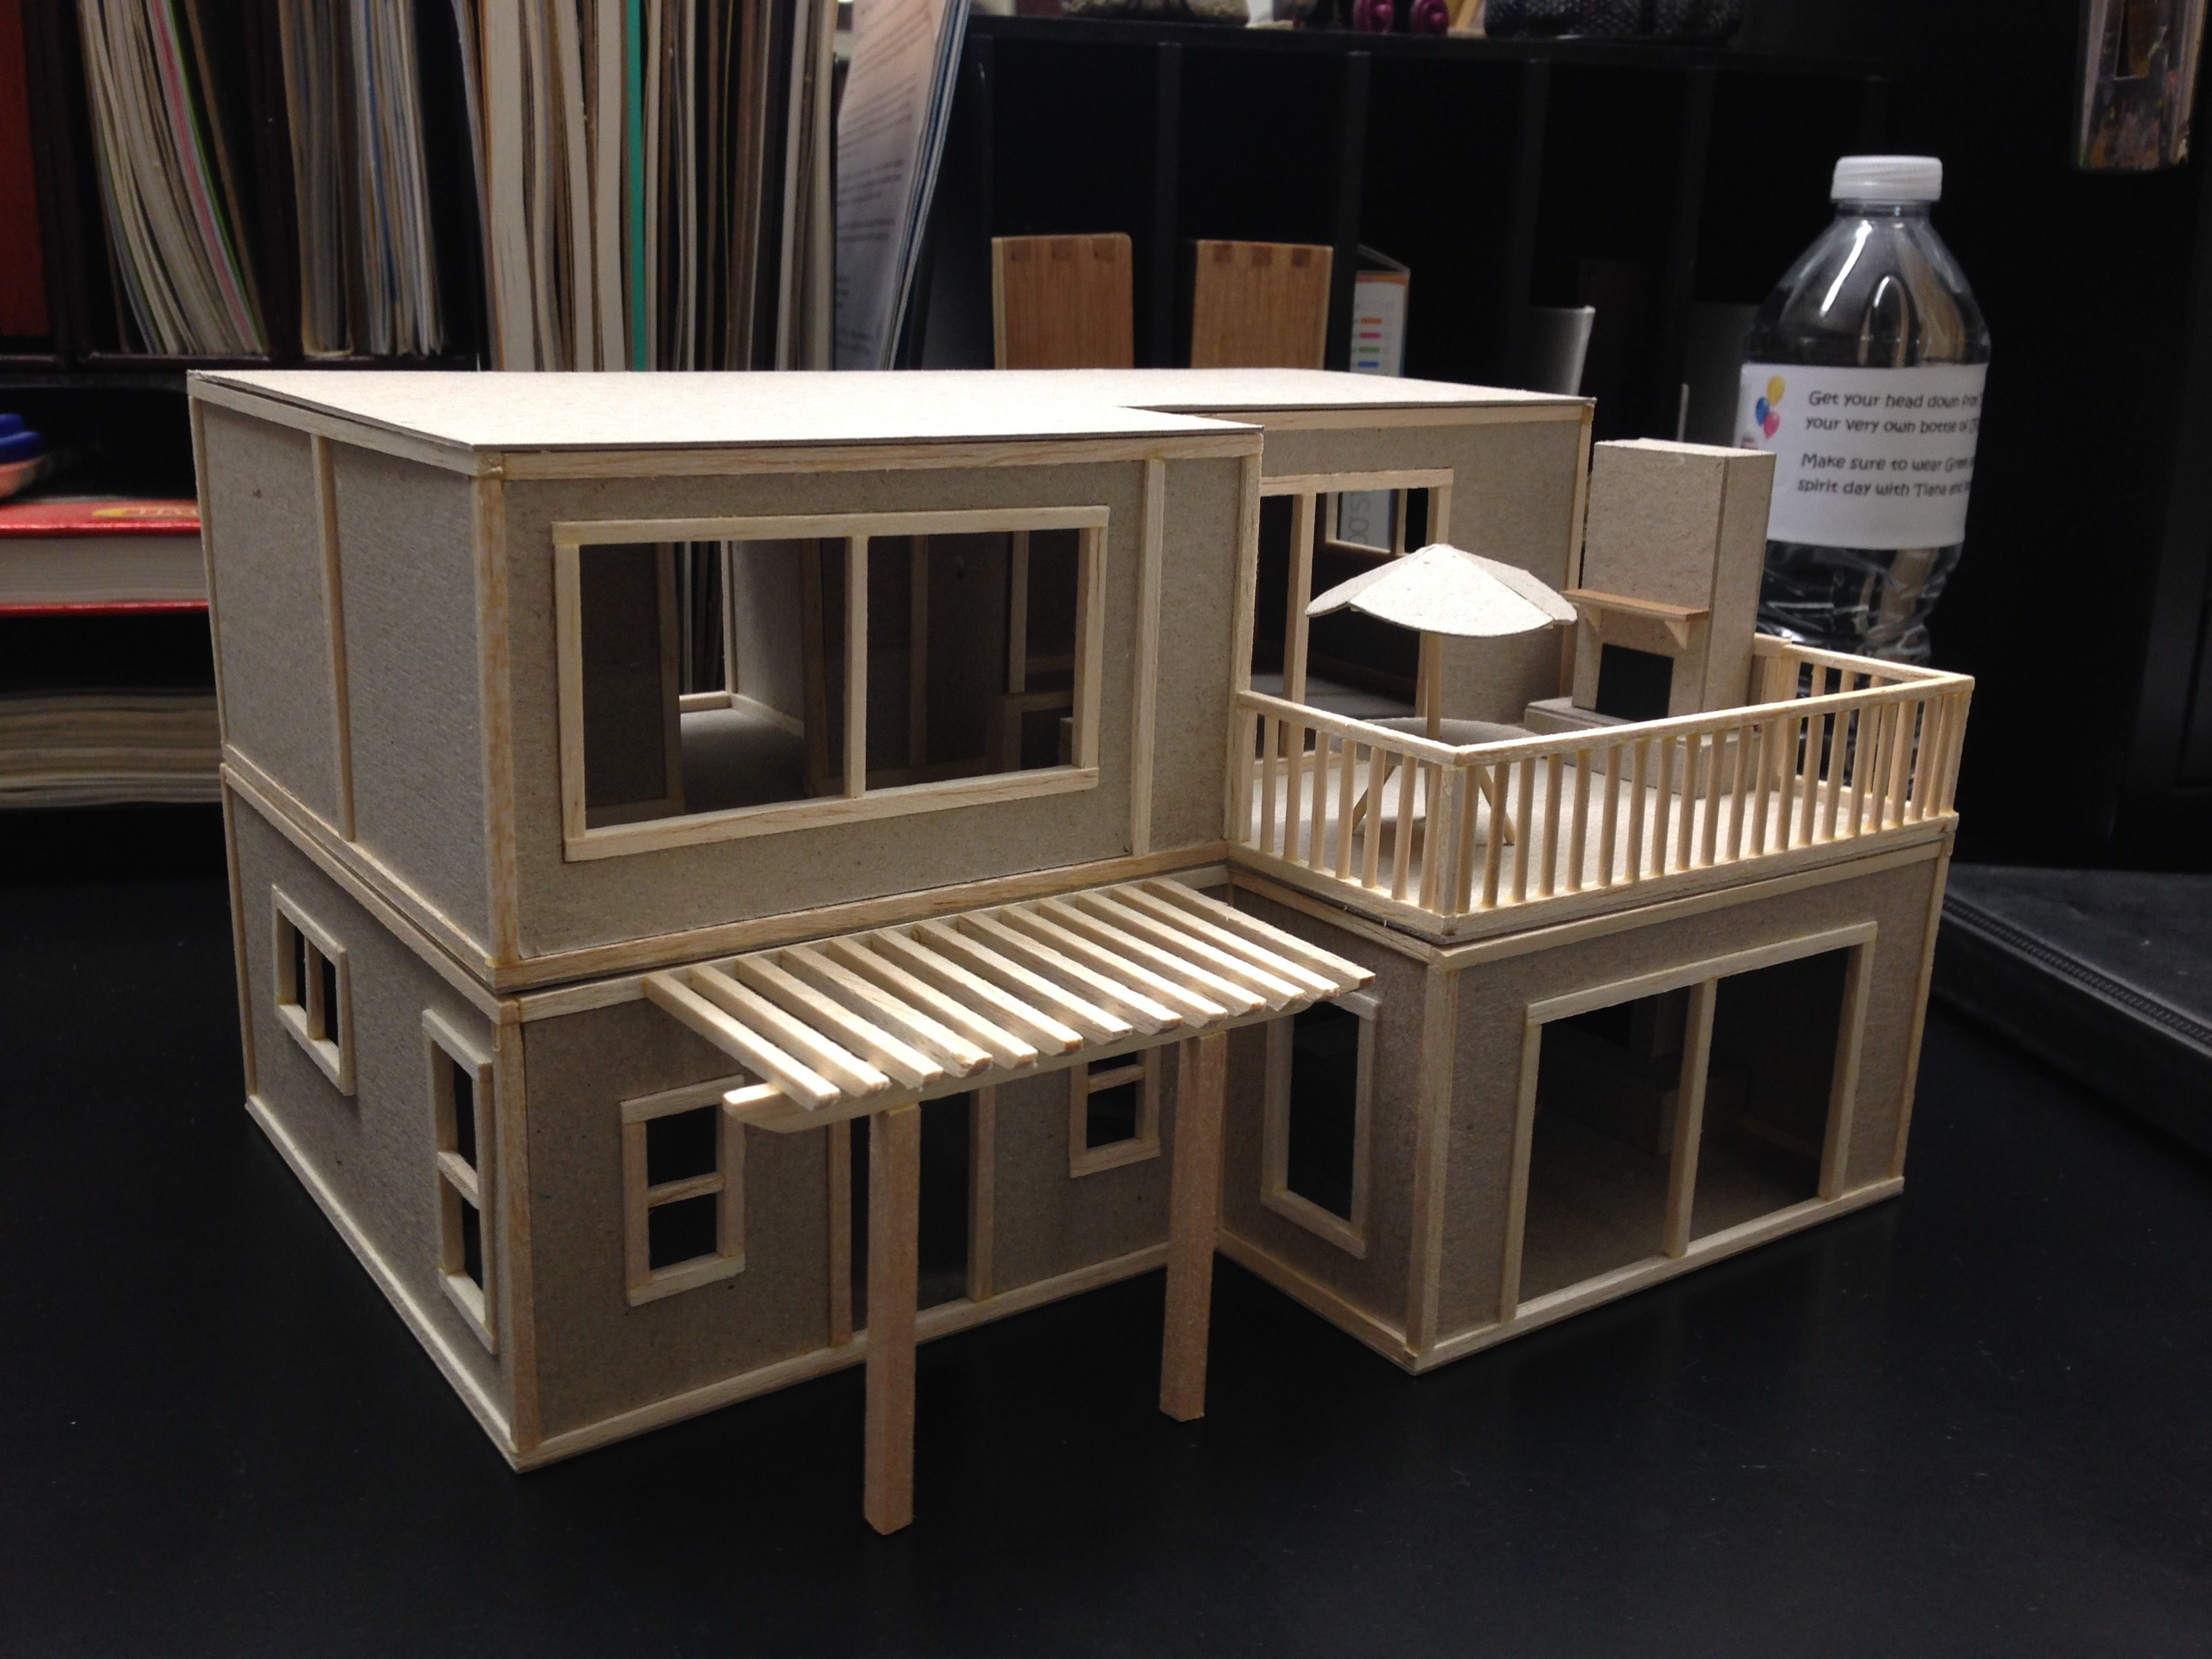 architectural dream beach house model. balsa wood and